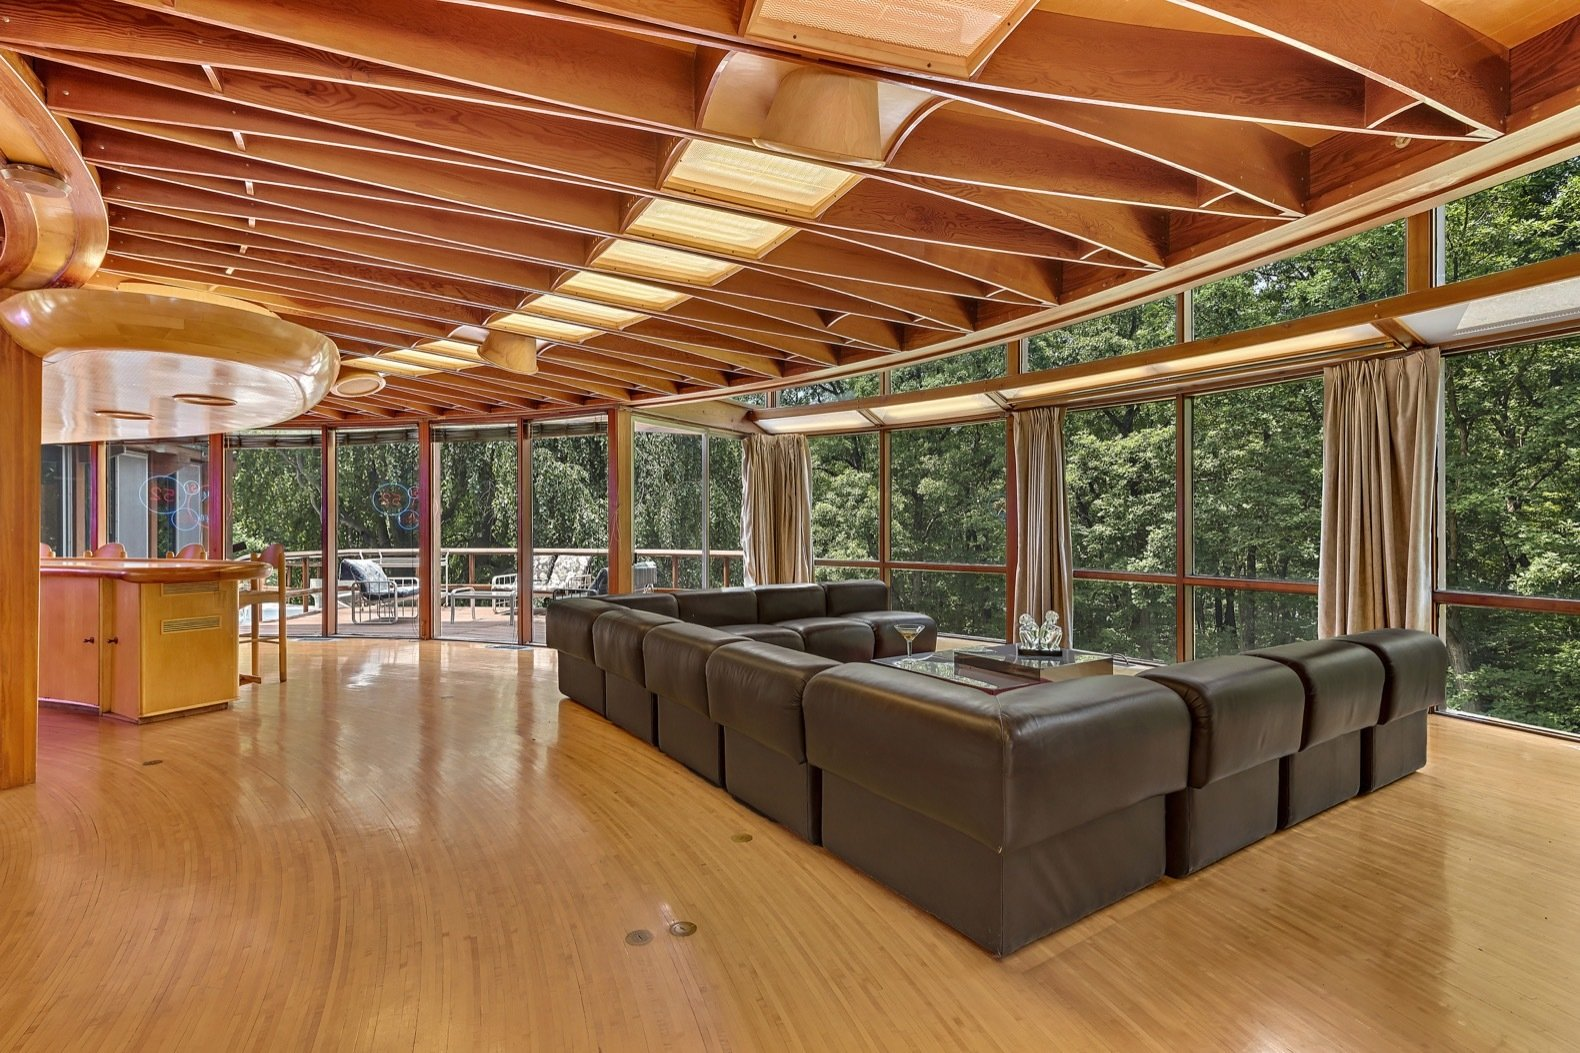 Living, Medium Hardwood, Bar, Recessed, Sofa, Stools, and Coffee Tables Full-height glazing wraps around the home for spectacular views of the woods.   Living Medium Hardwood Recessed Bar Photos from Jackie Gleason's Spaceship-Like Mansion Hits the Market For $12M